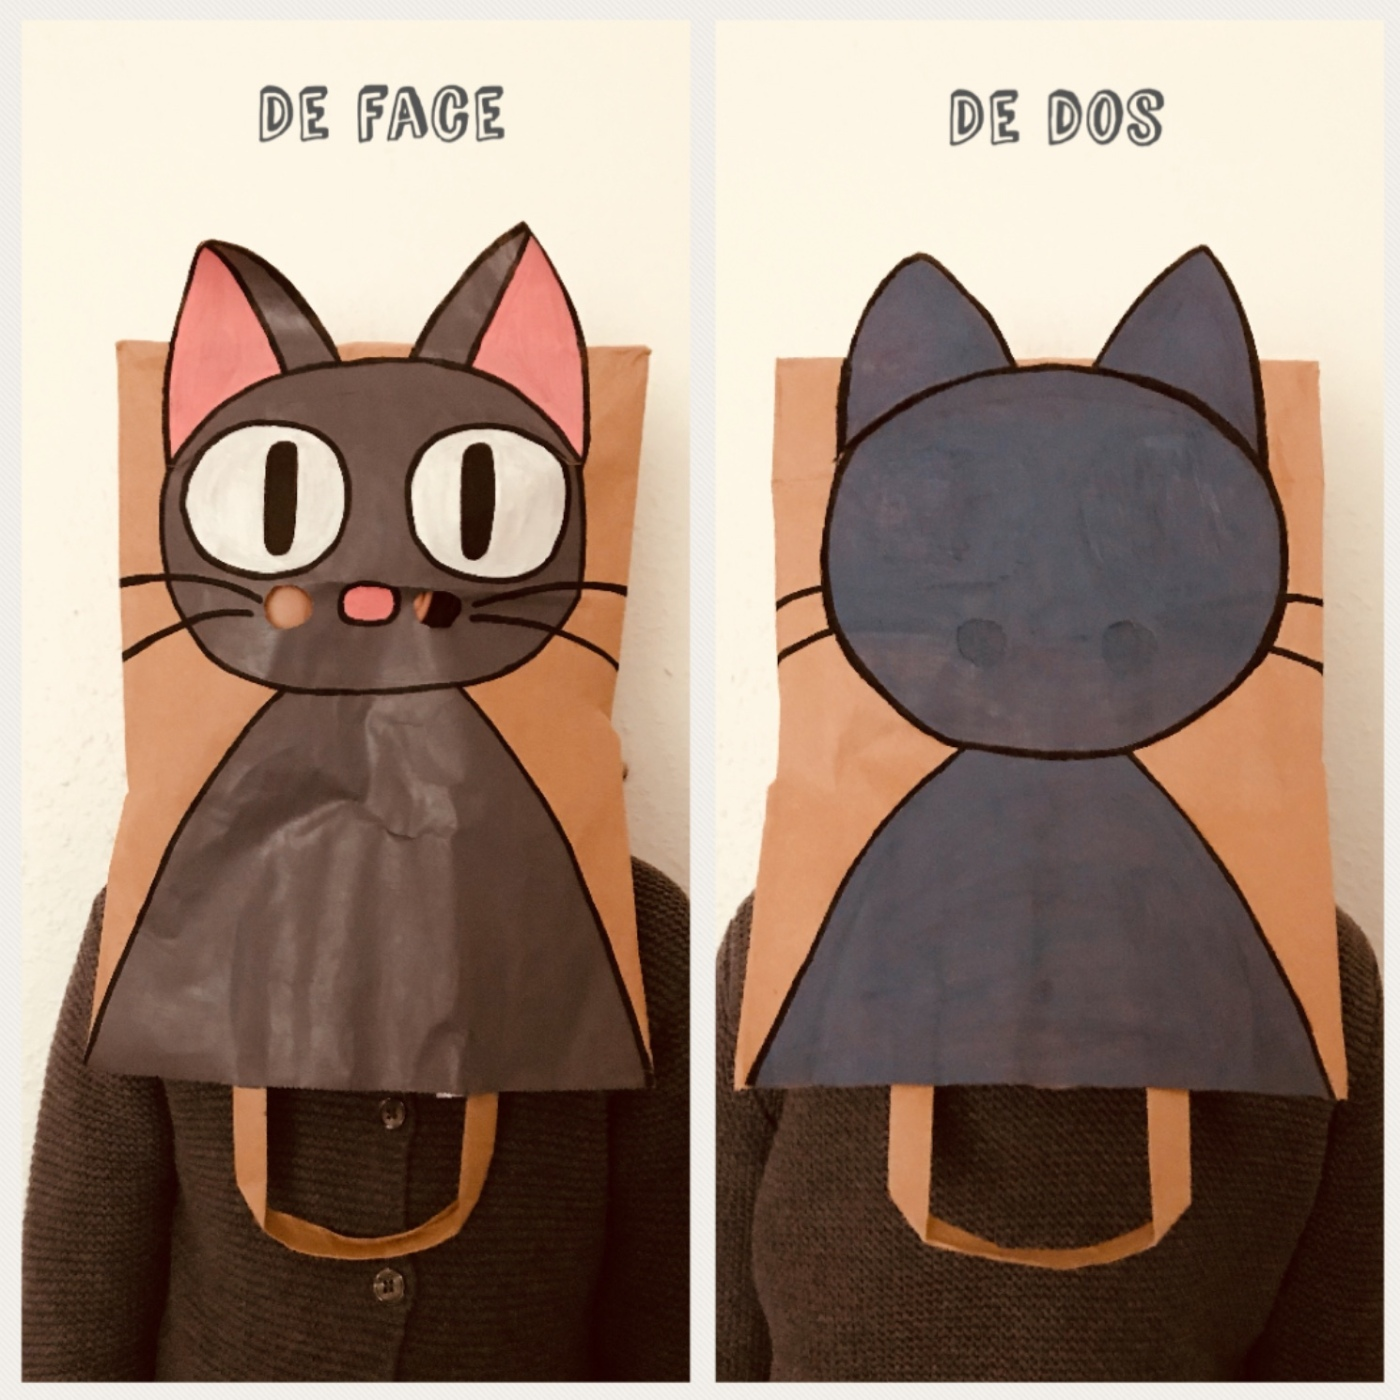 Masque chat sac en papier craft diy carnaval bricolage enfant